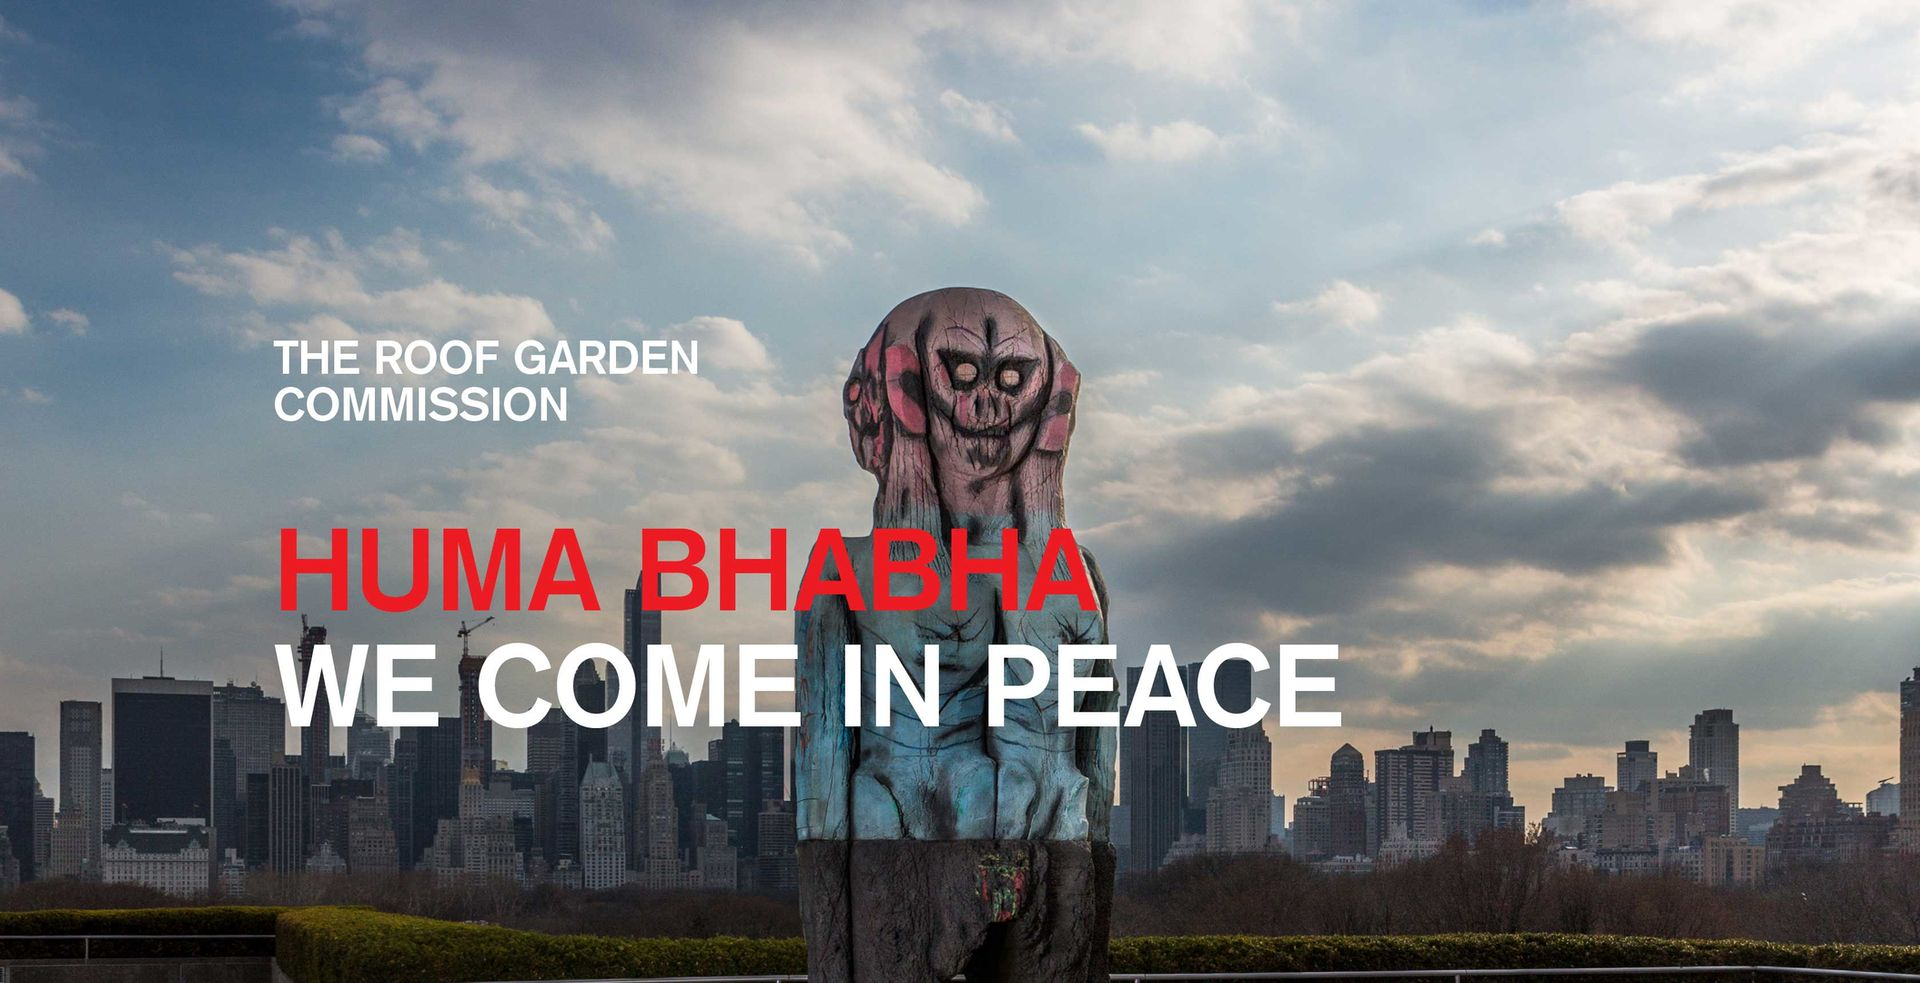 The Roof Garden Commission: Huma Bhabha, We Come in Peace